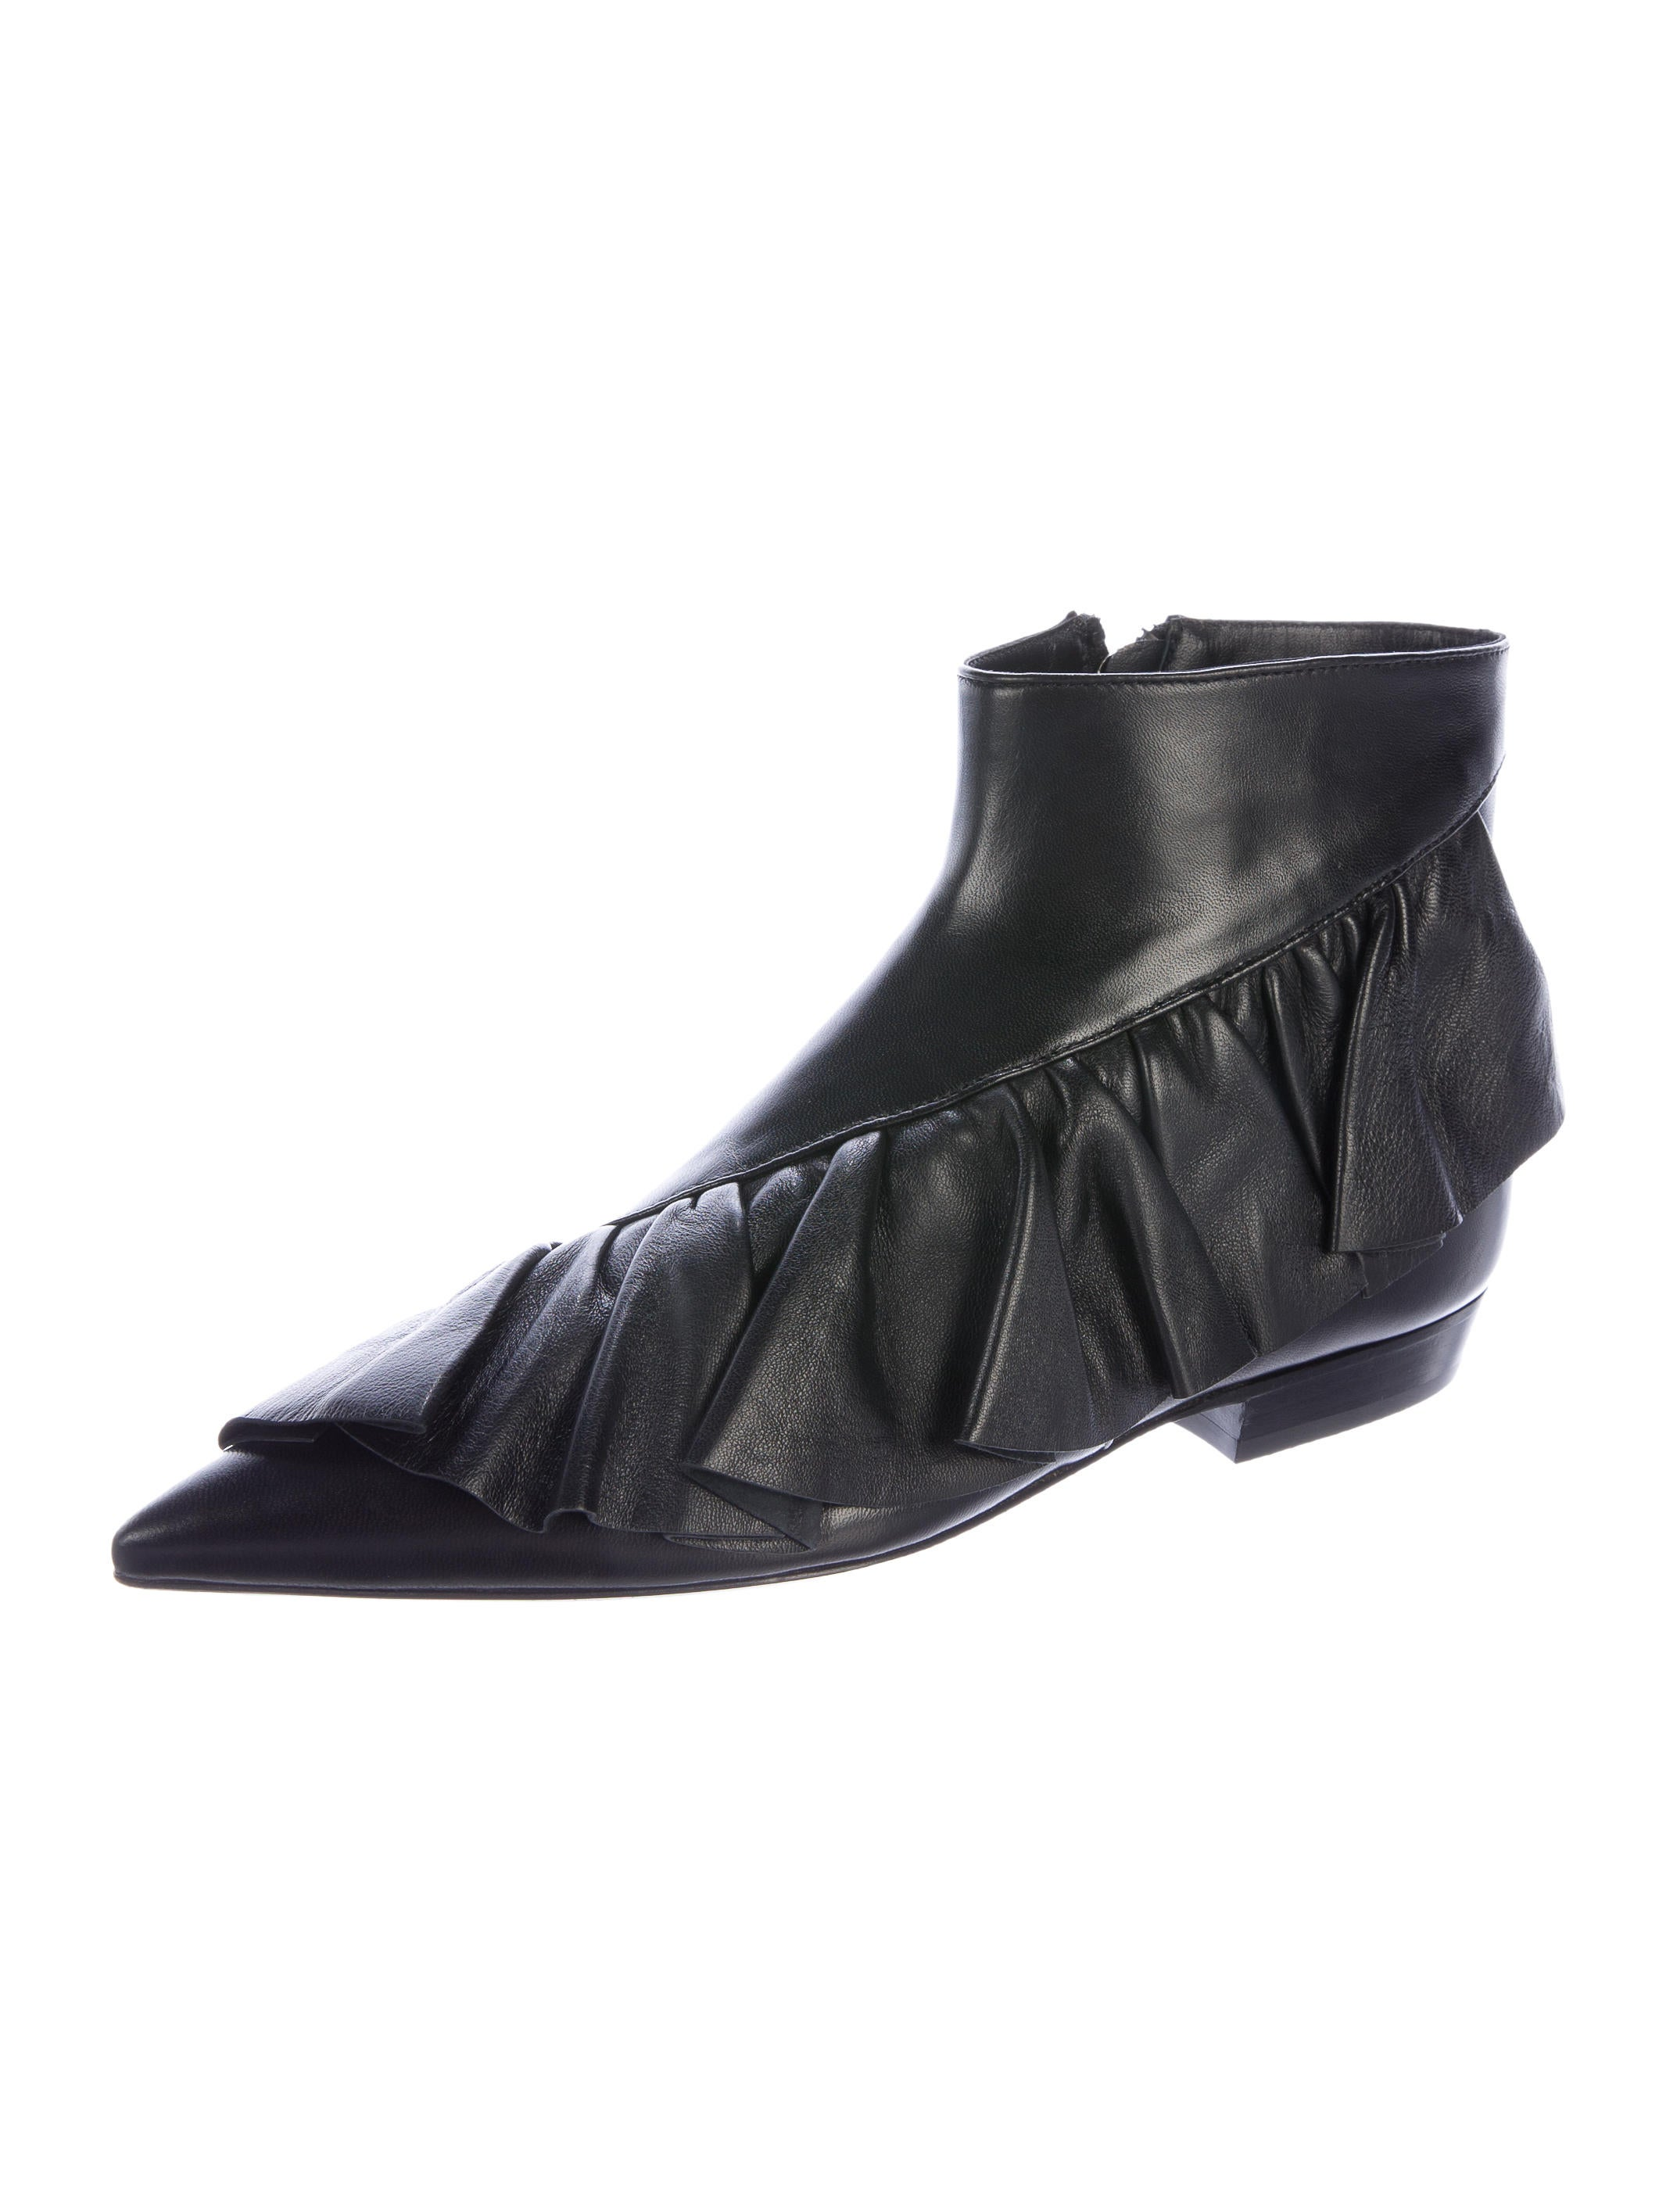 J W Anderson Leather Ruffle Booties W Tags Shoes